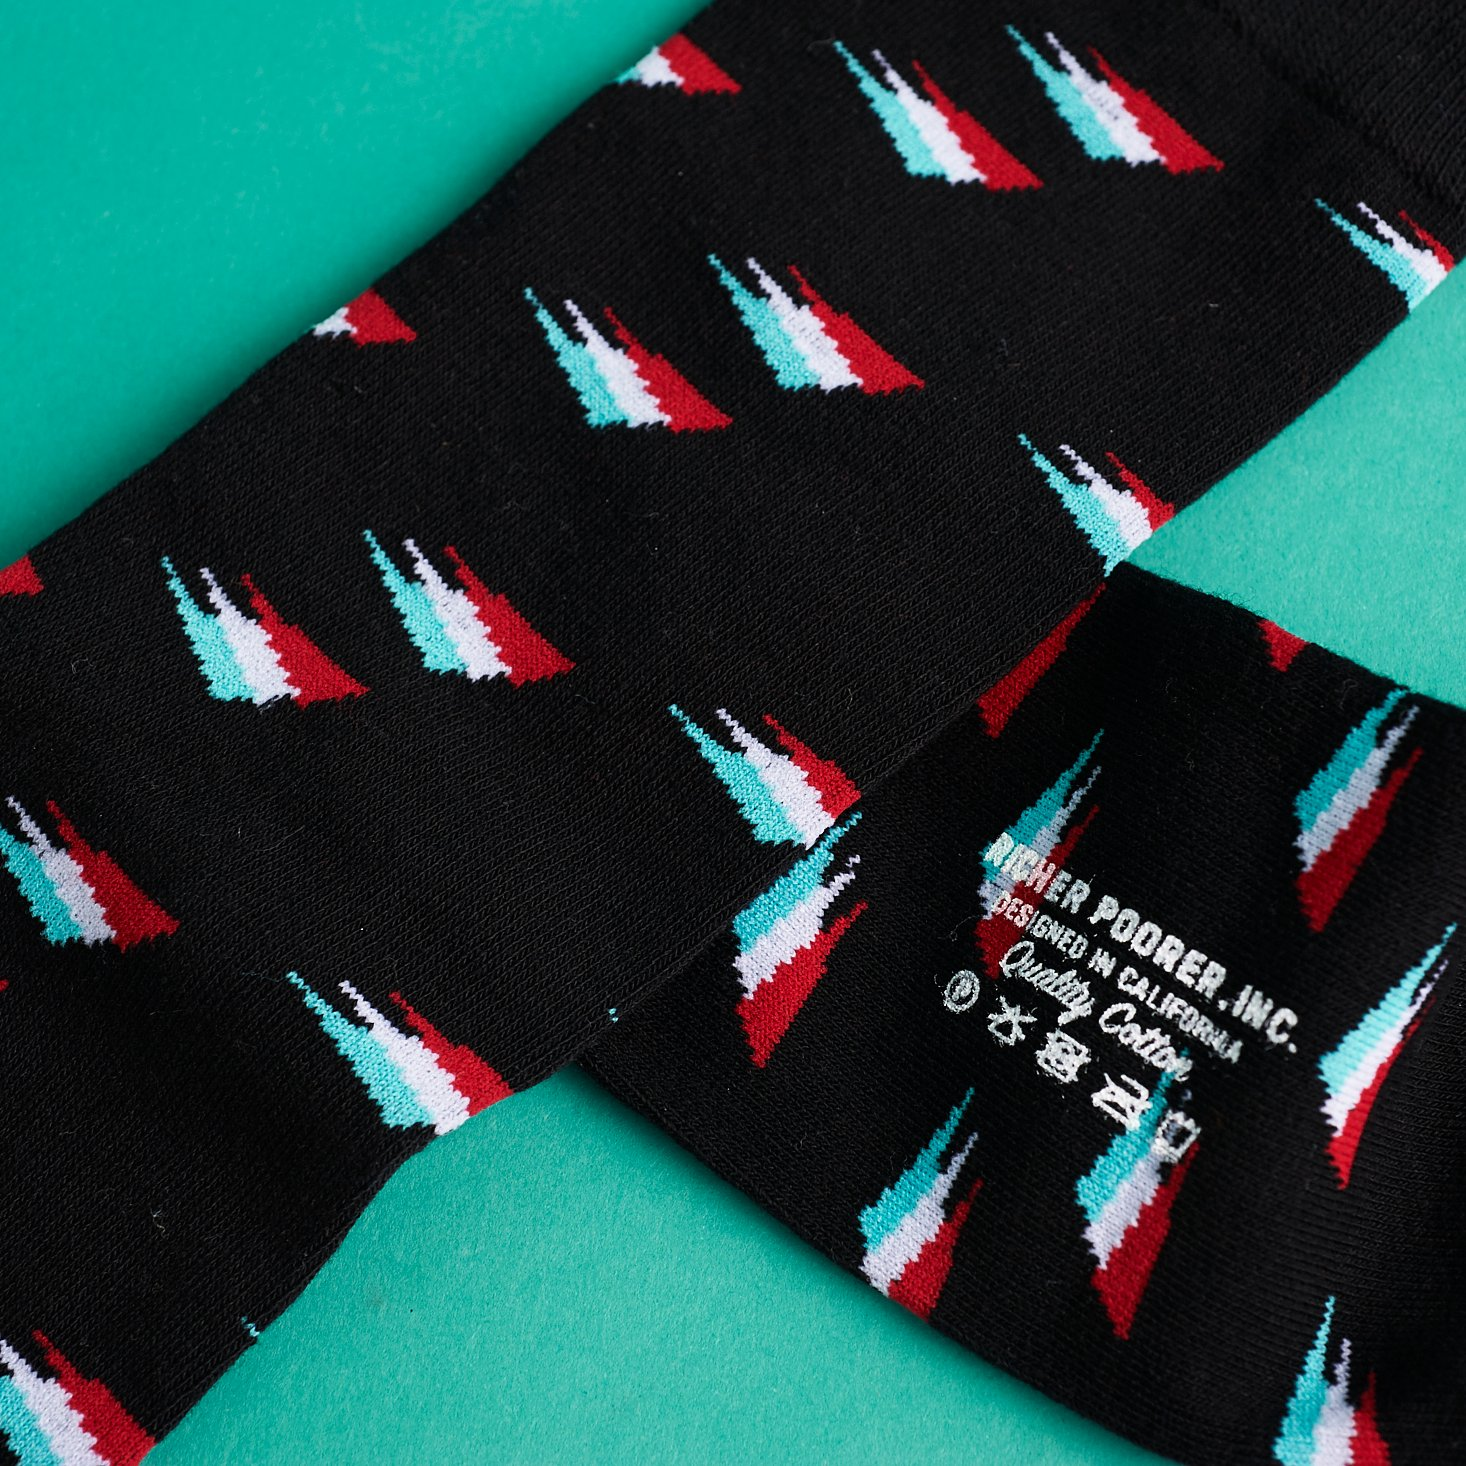 Say-It-With-A-Sock-Mens-March-2017-0007